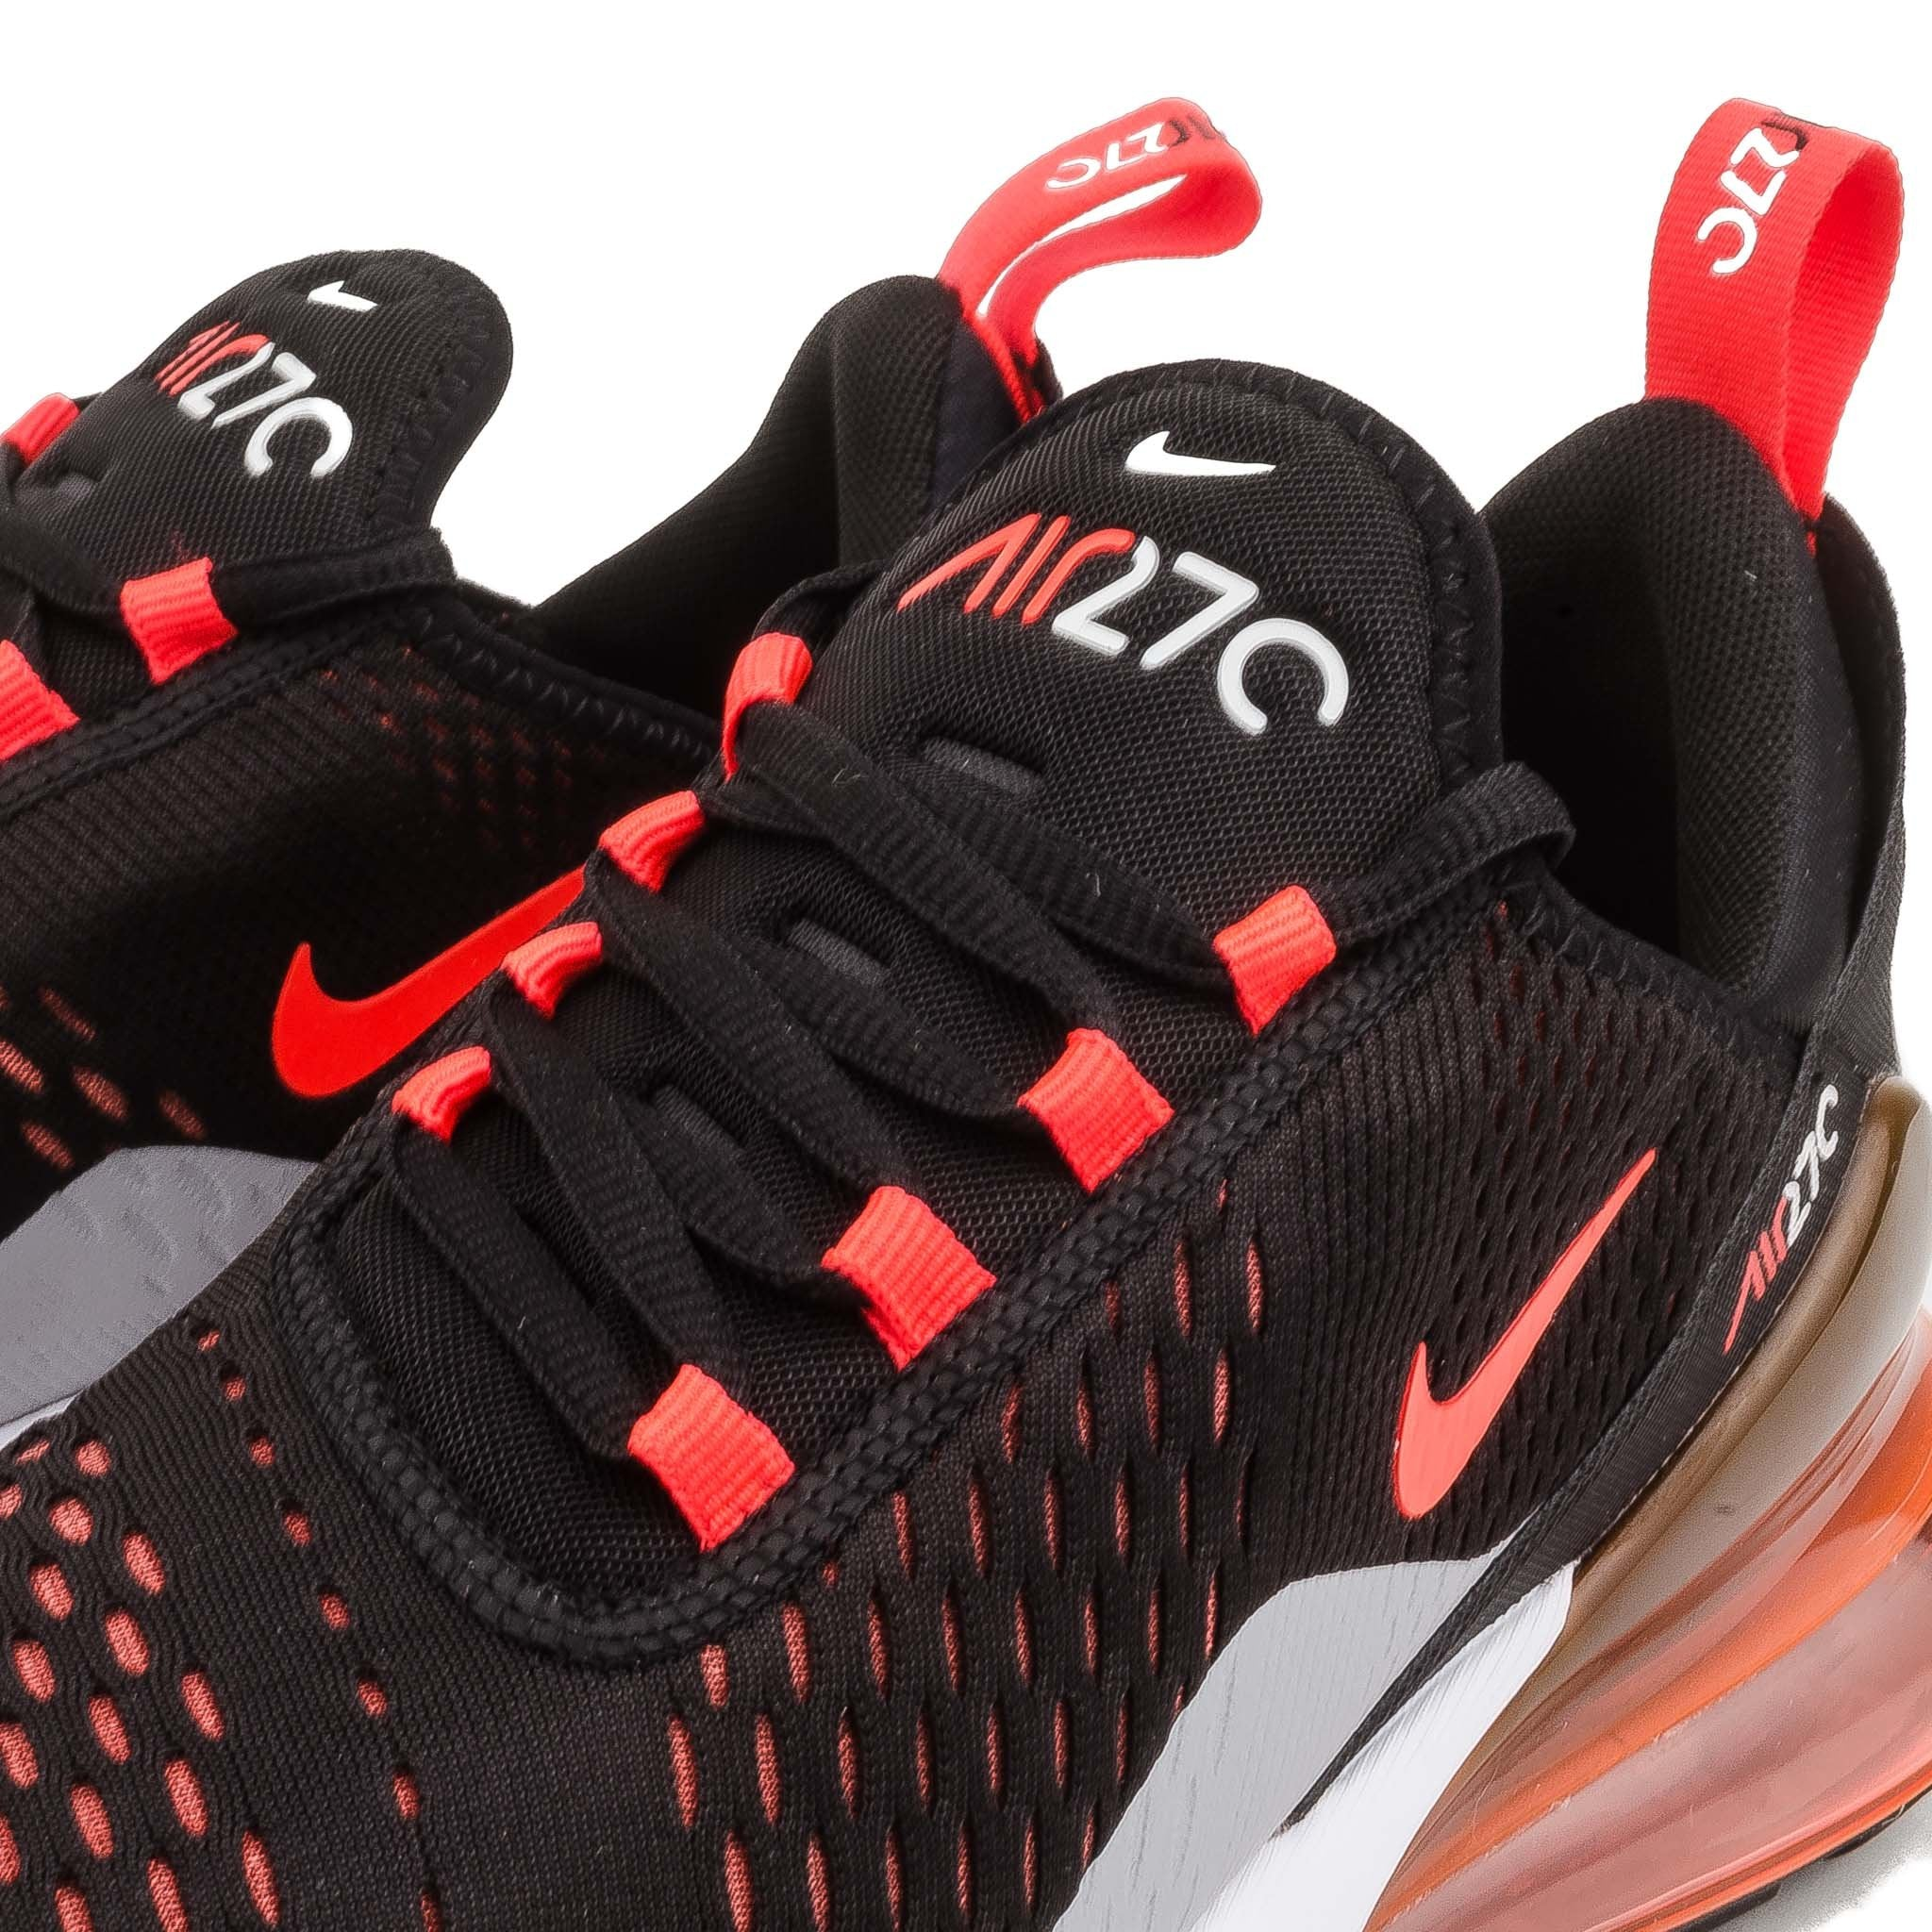 Air Max 270 AH8050-015 Black